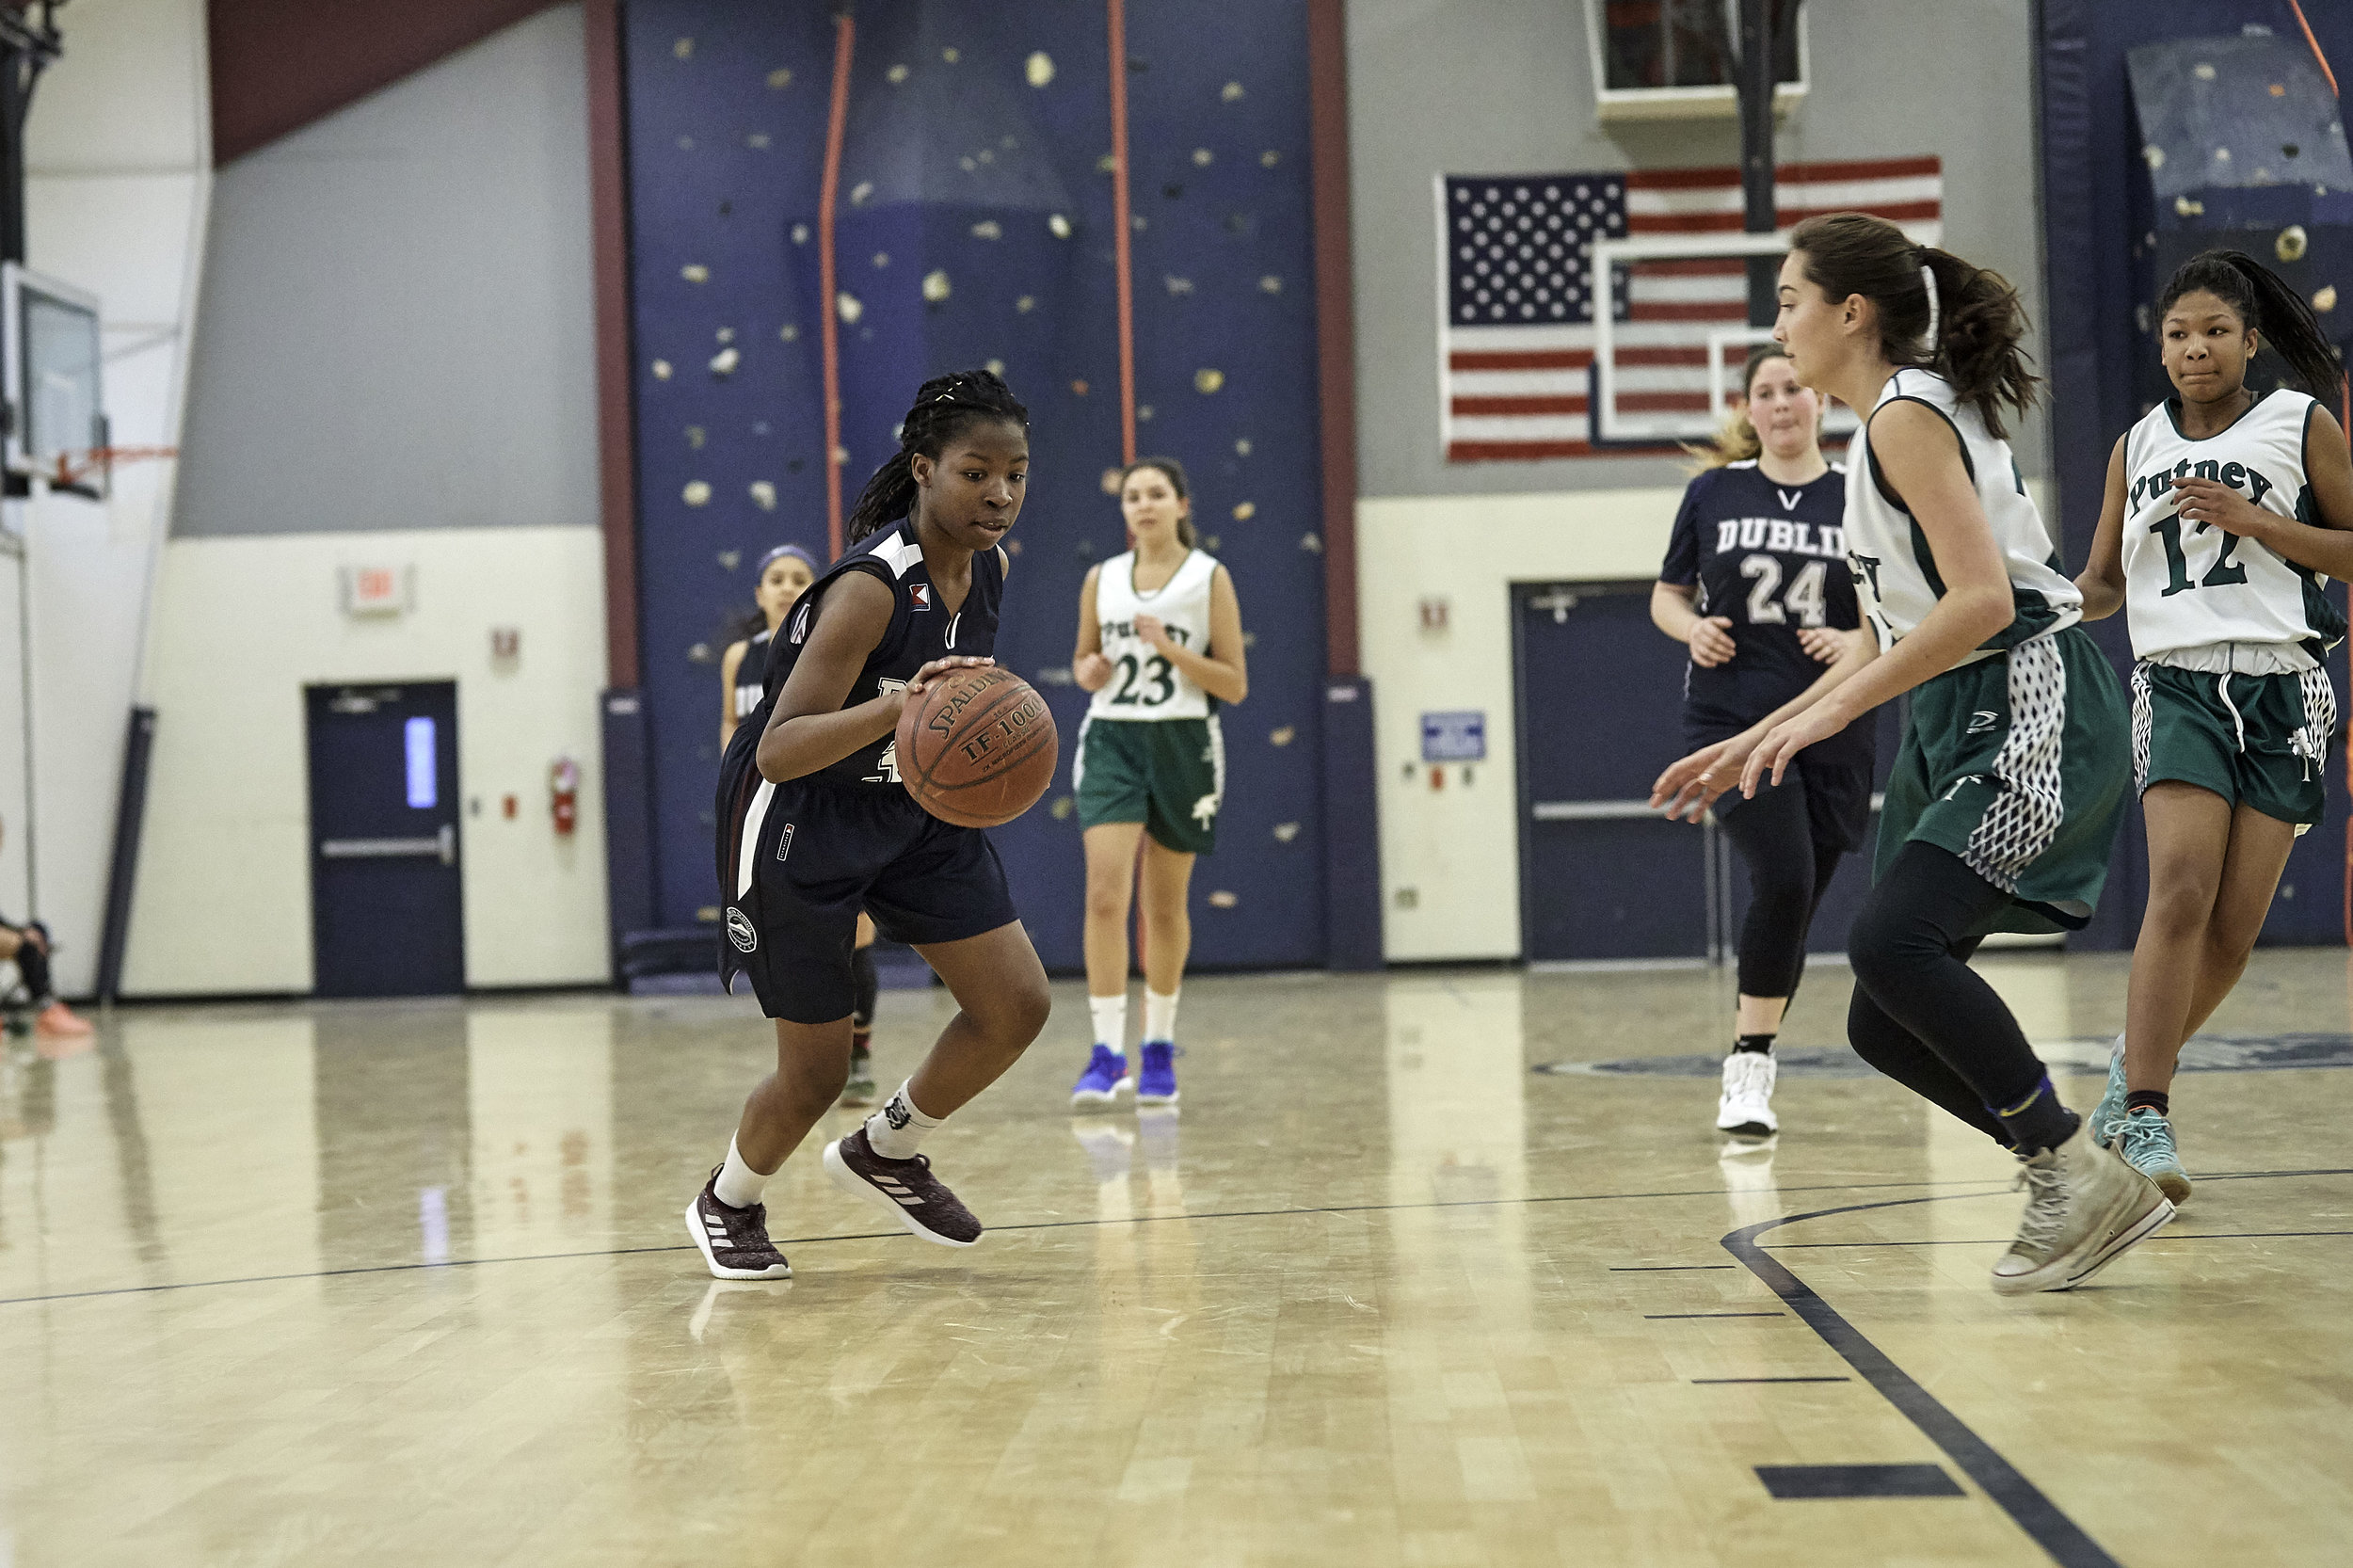 Basketball vs Putney School, February 9, 2019 - 167270.jpg